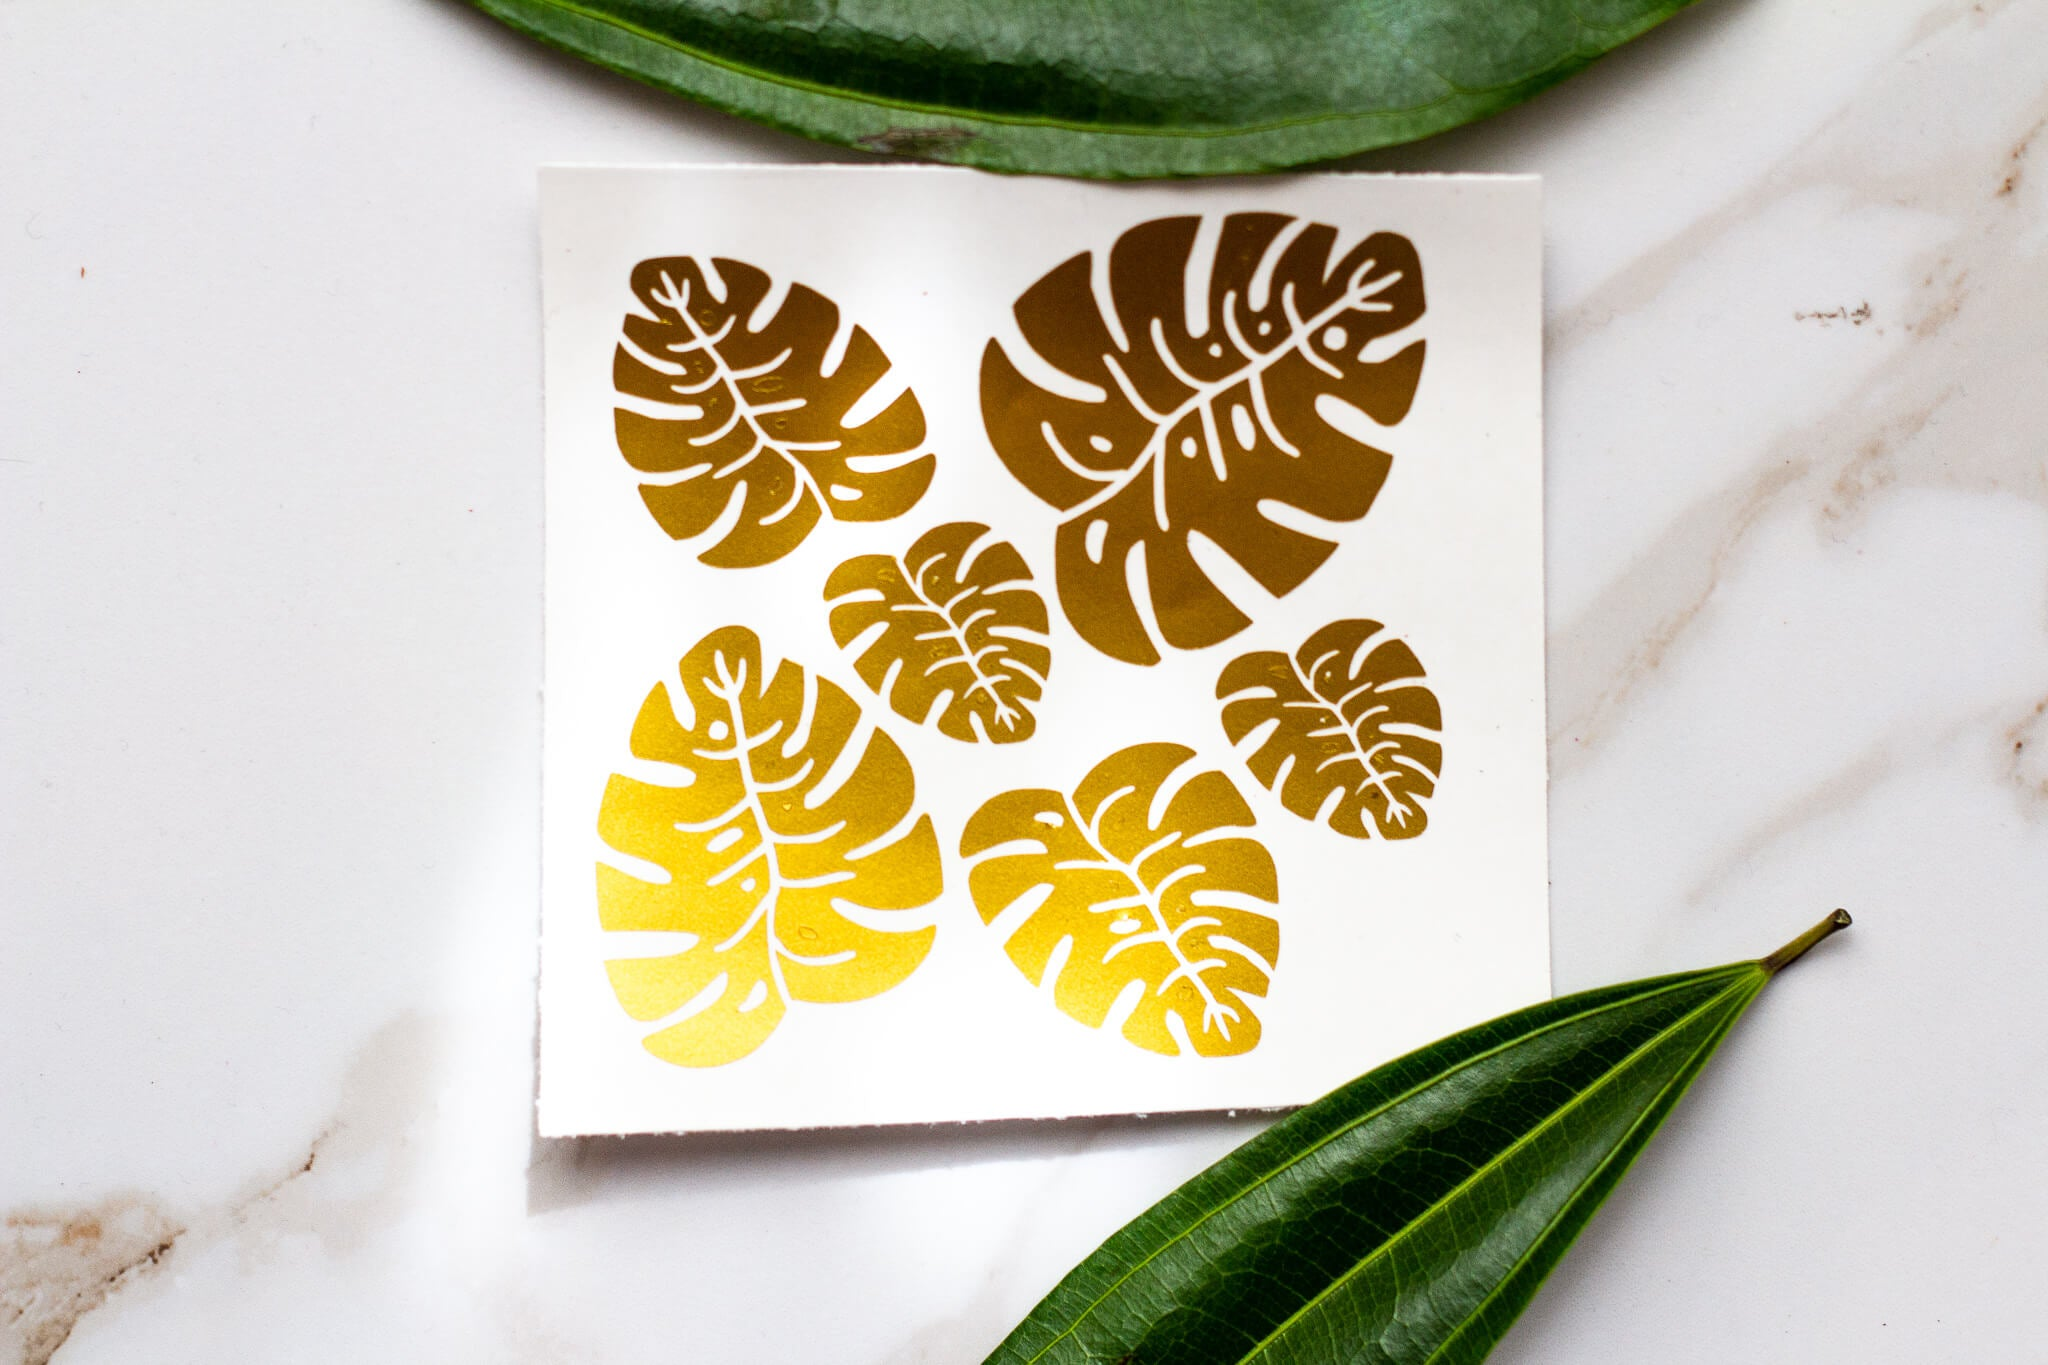 Monstera Vinyl Decal Waterproof Sticker Pack